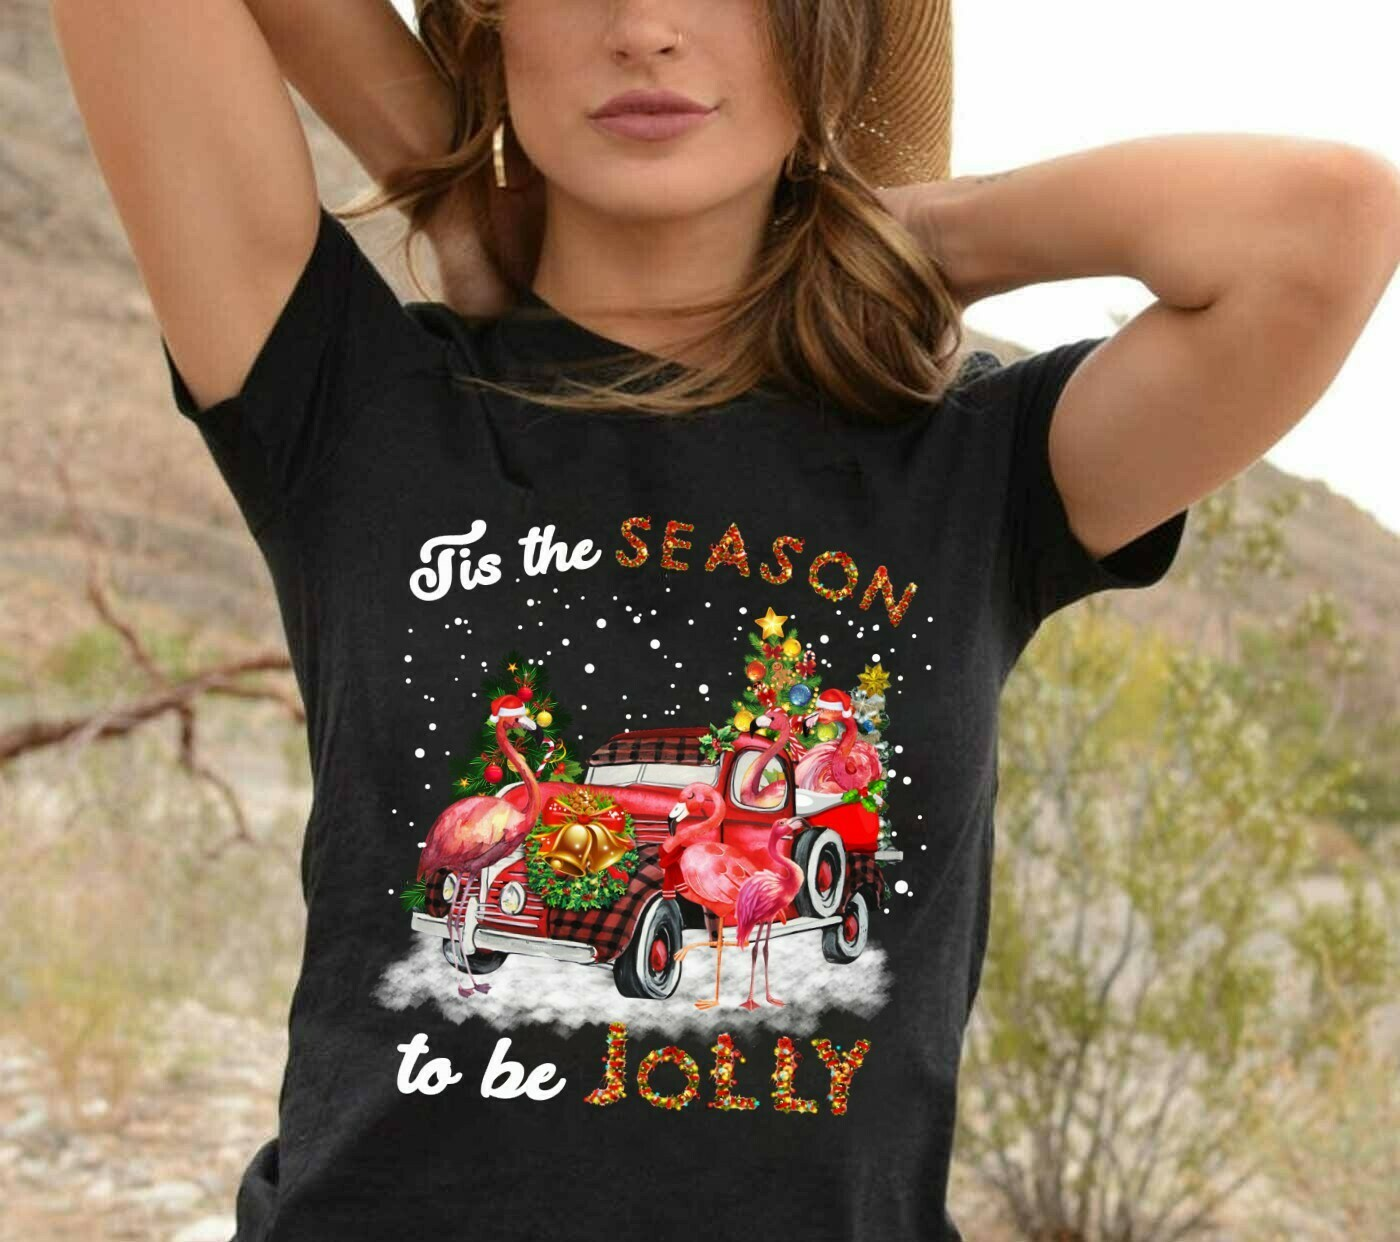 Flamingo On Red Car Merry Christmas Tis The Season To Be Jolly Gifts For Lovers Christmas Noel Family Vacation Friends Team Party T-Shirt Long Sleeve Sweatshirt Hoodie Jolly Family Gifts